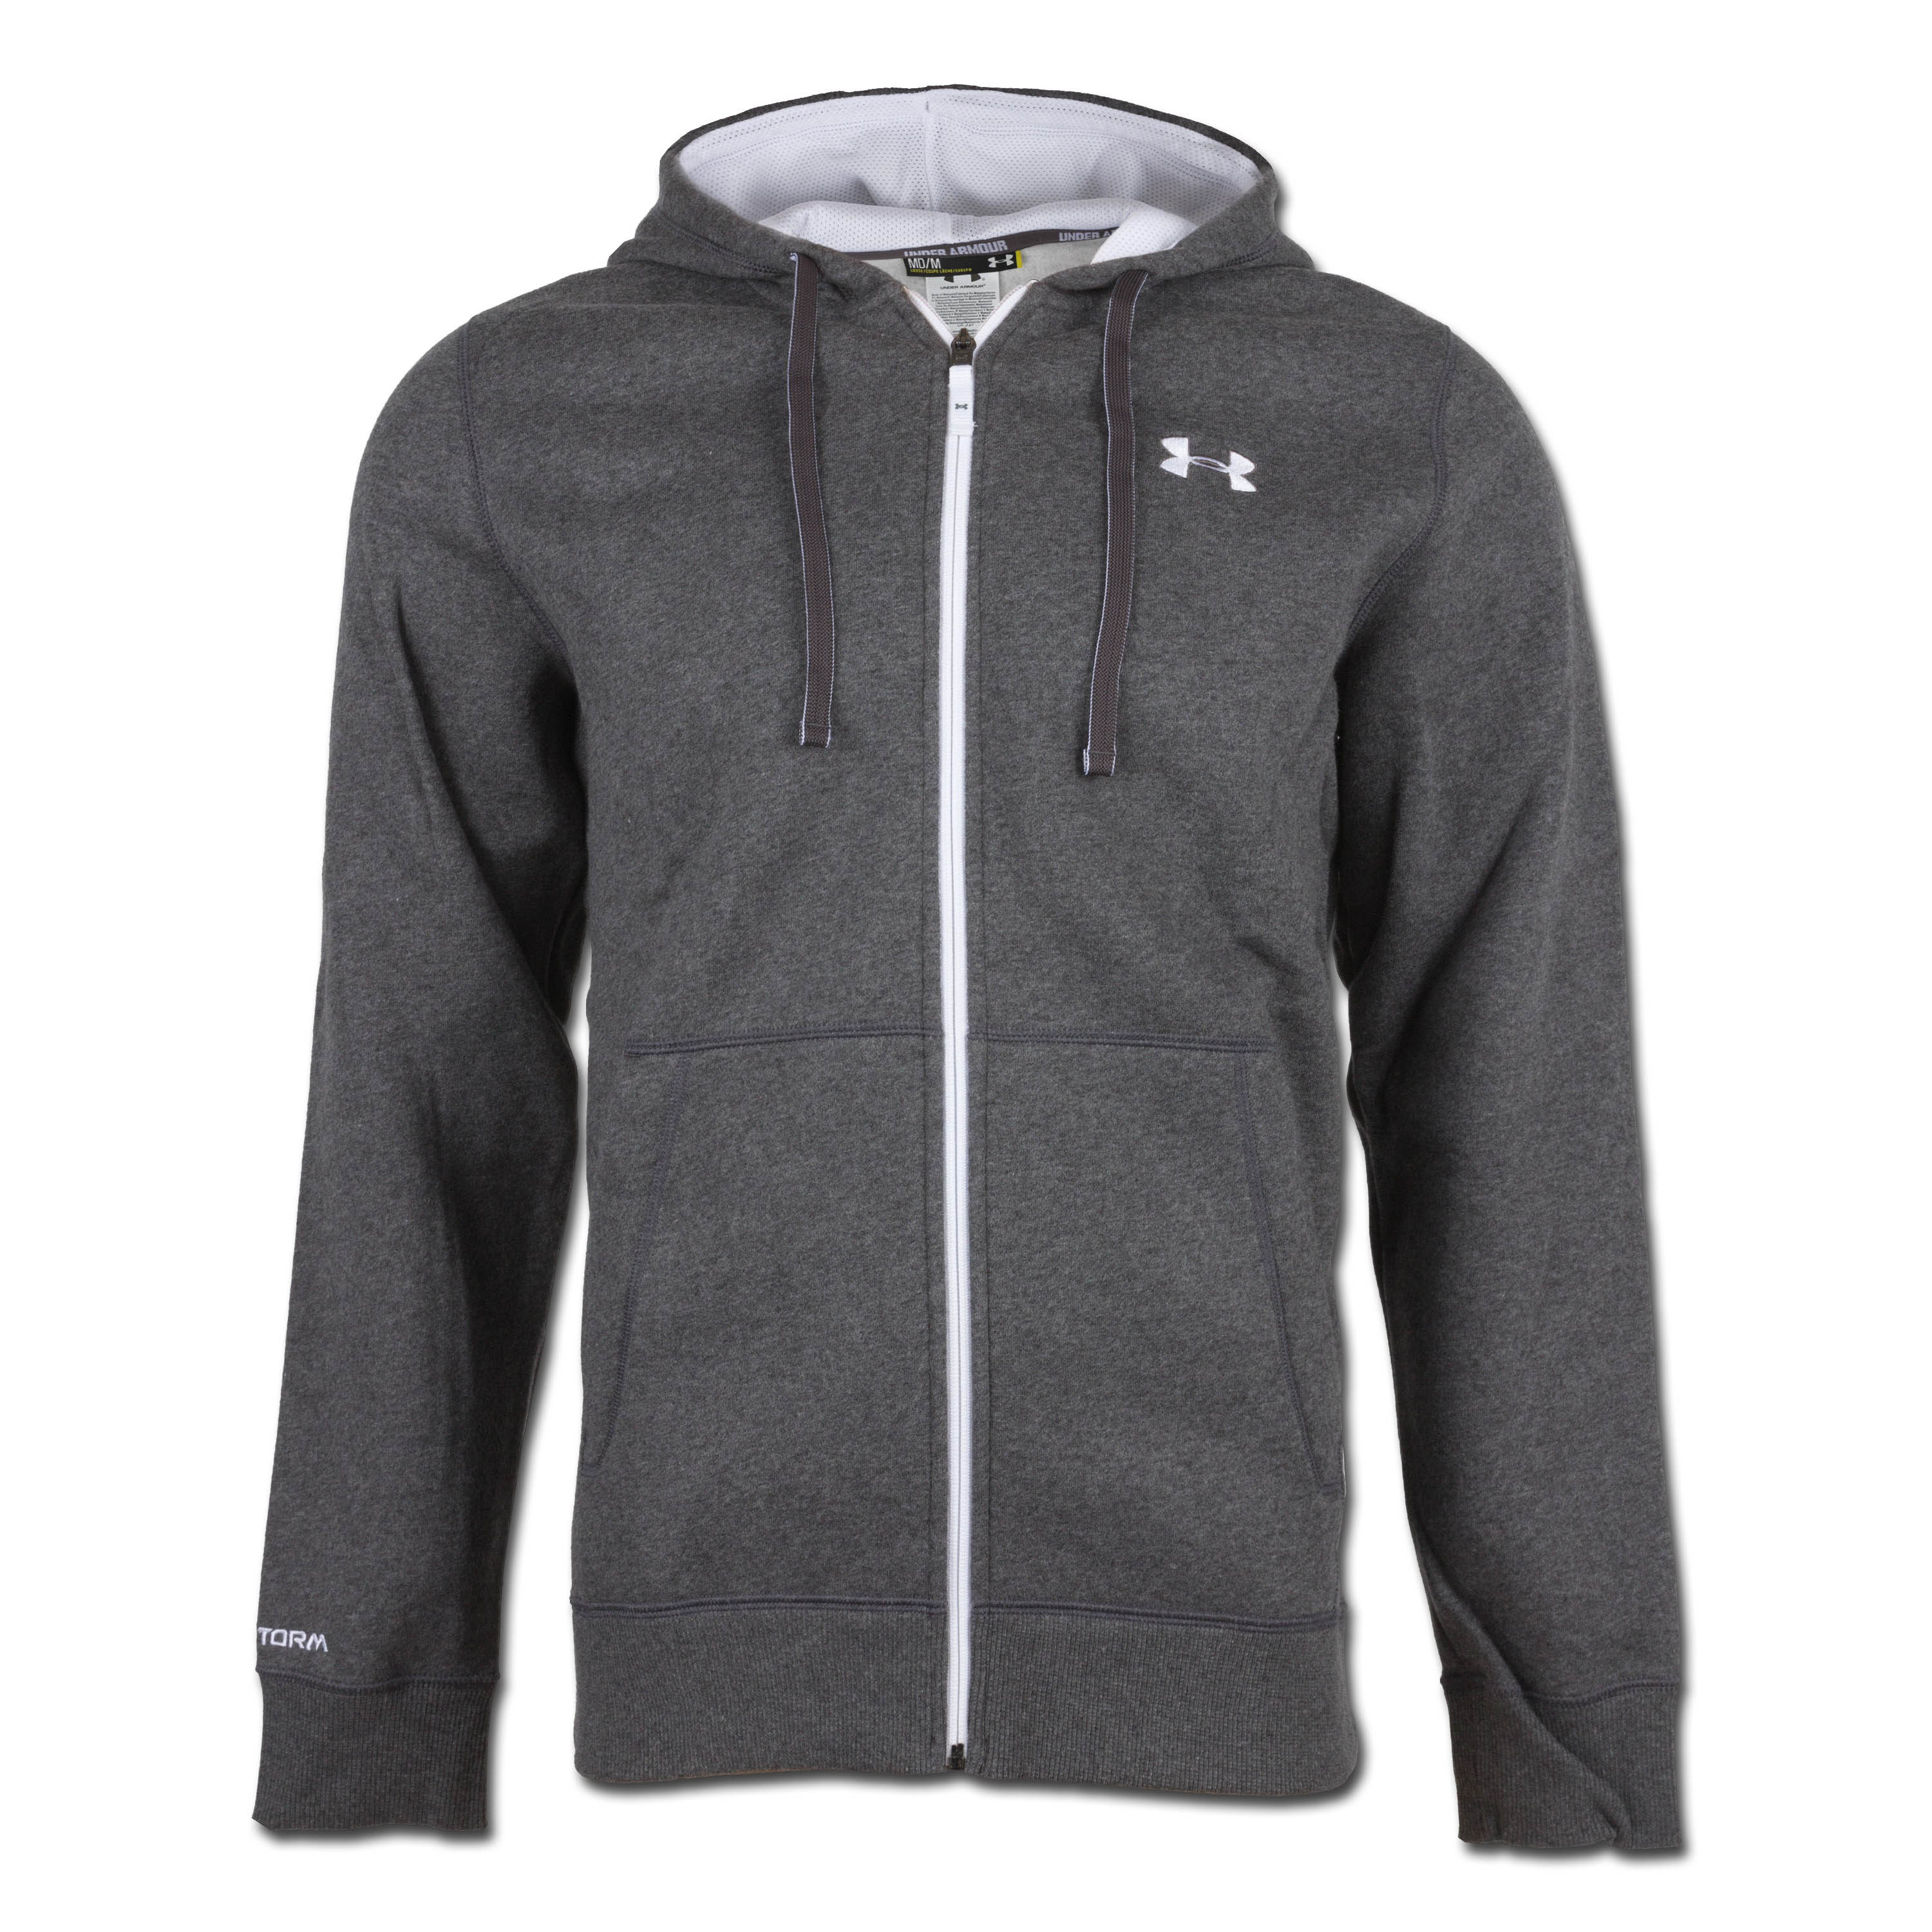 Under Armour Charged Cotton Rival Shirt Full Zip anthrazit